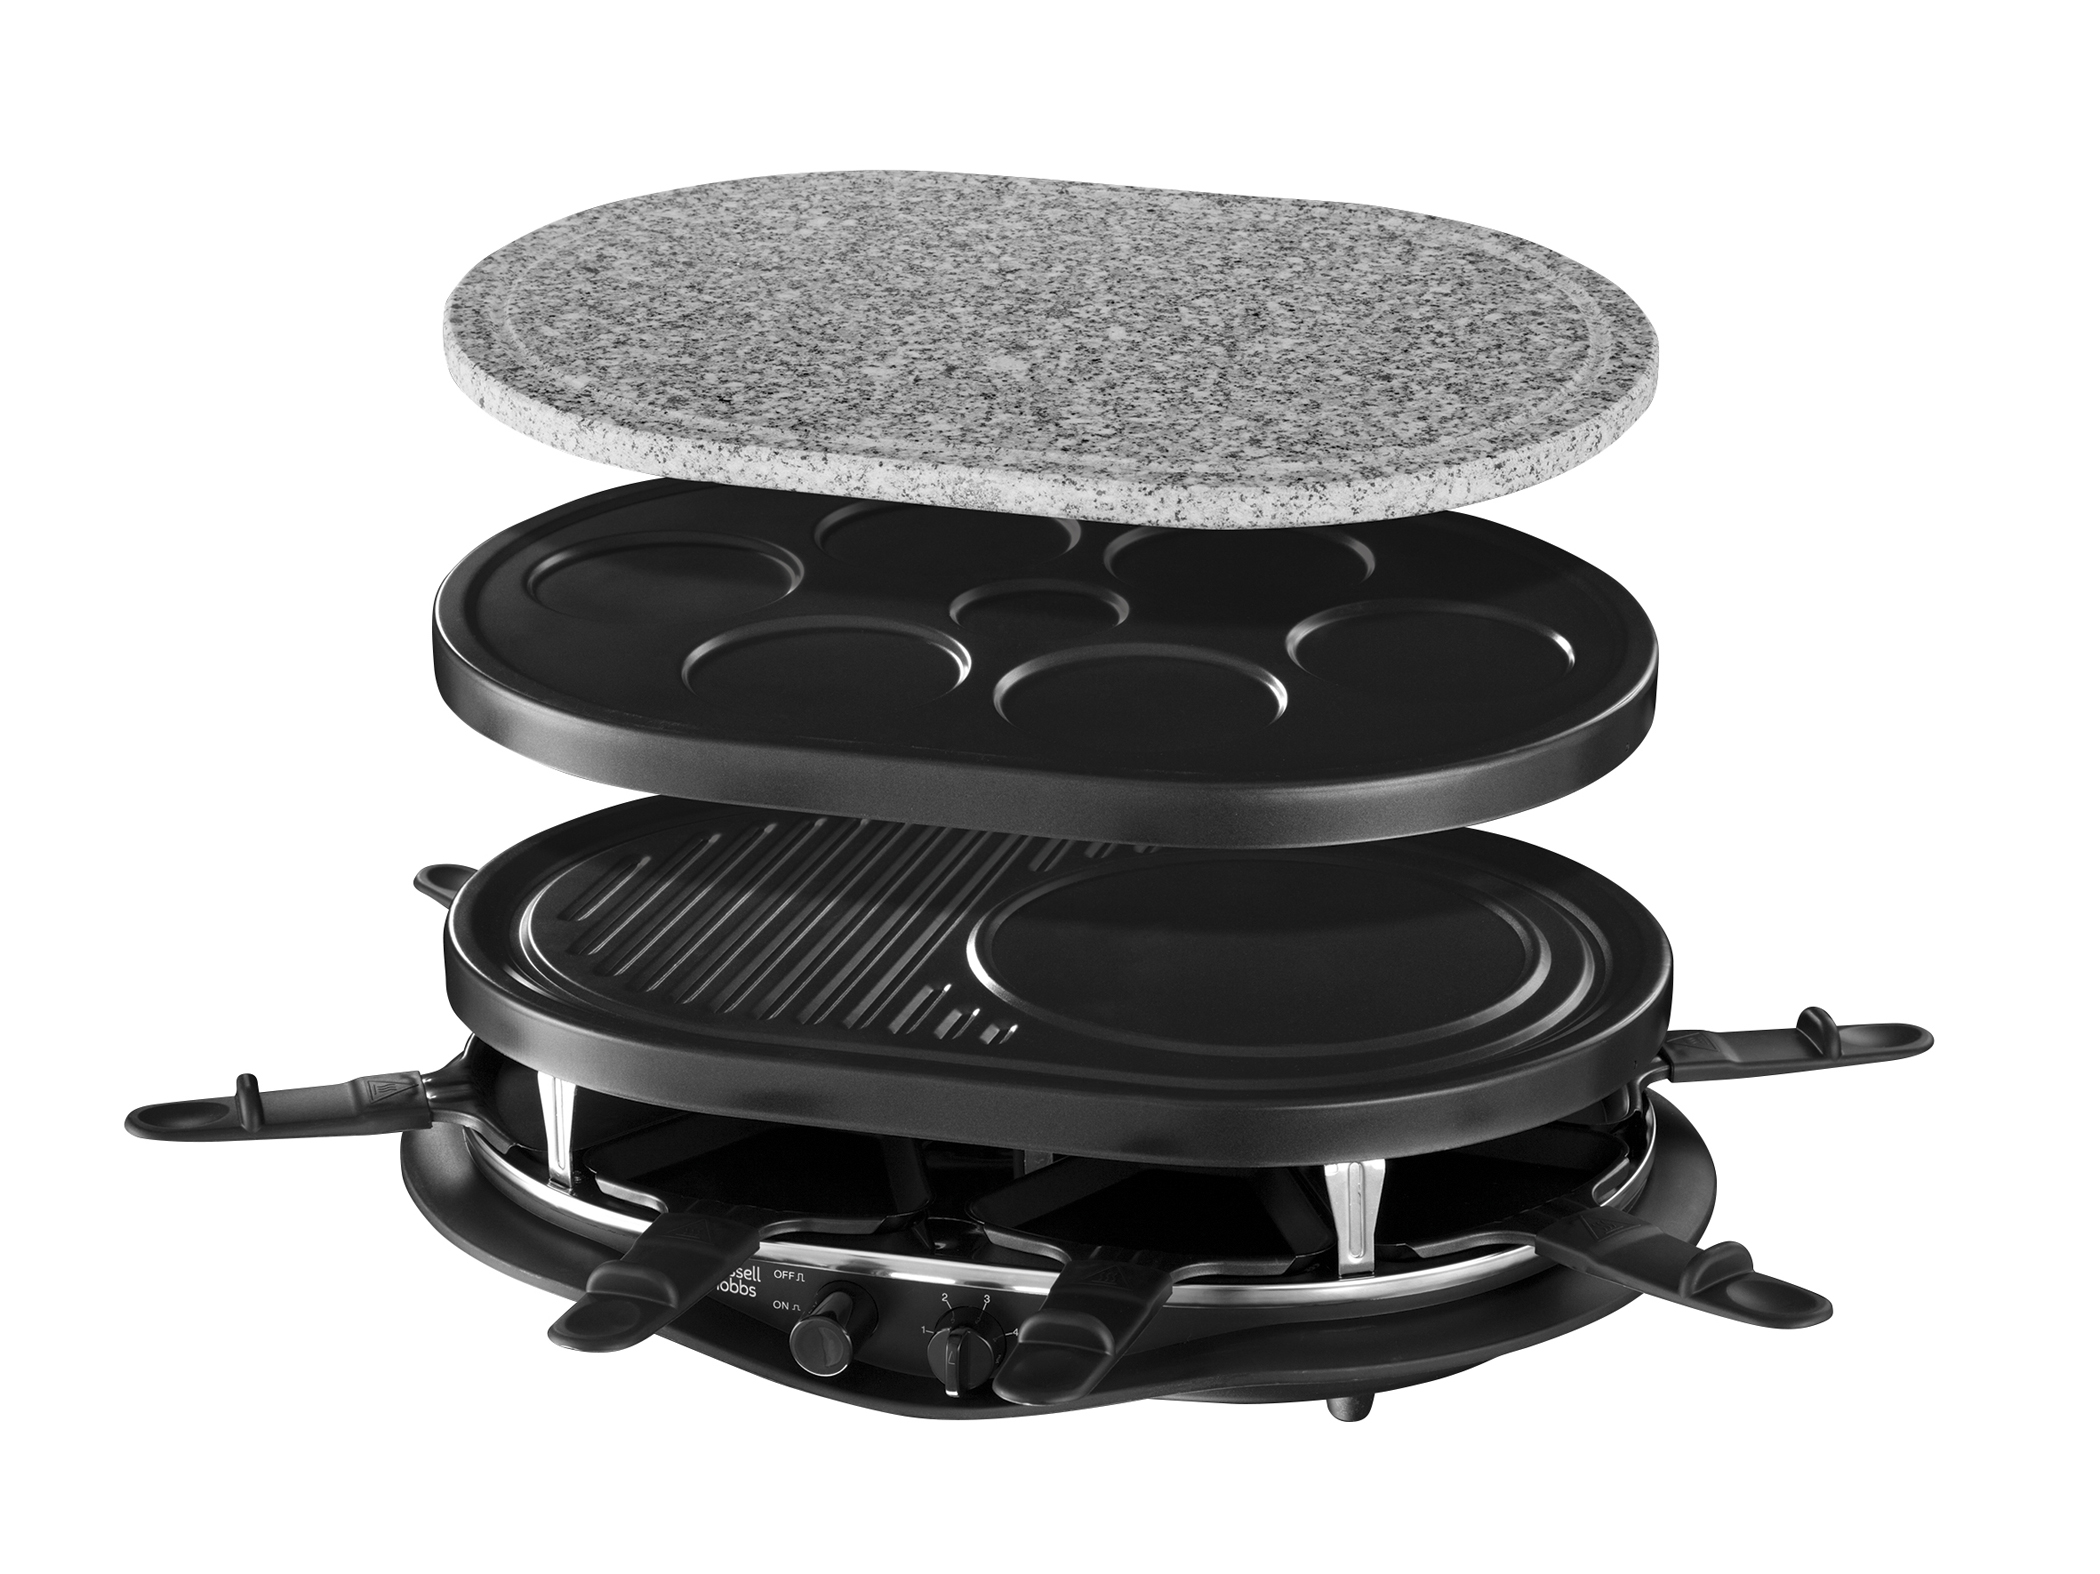 russell hobbs raclette fiesta 21000 56. Black Bedroom Furniture Sets. Home Design Ideas